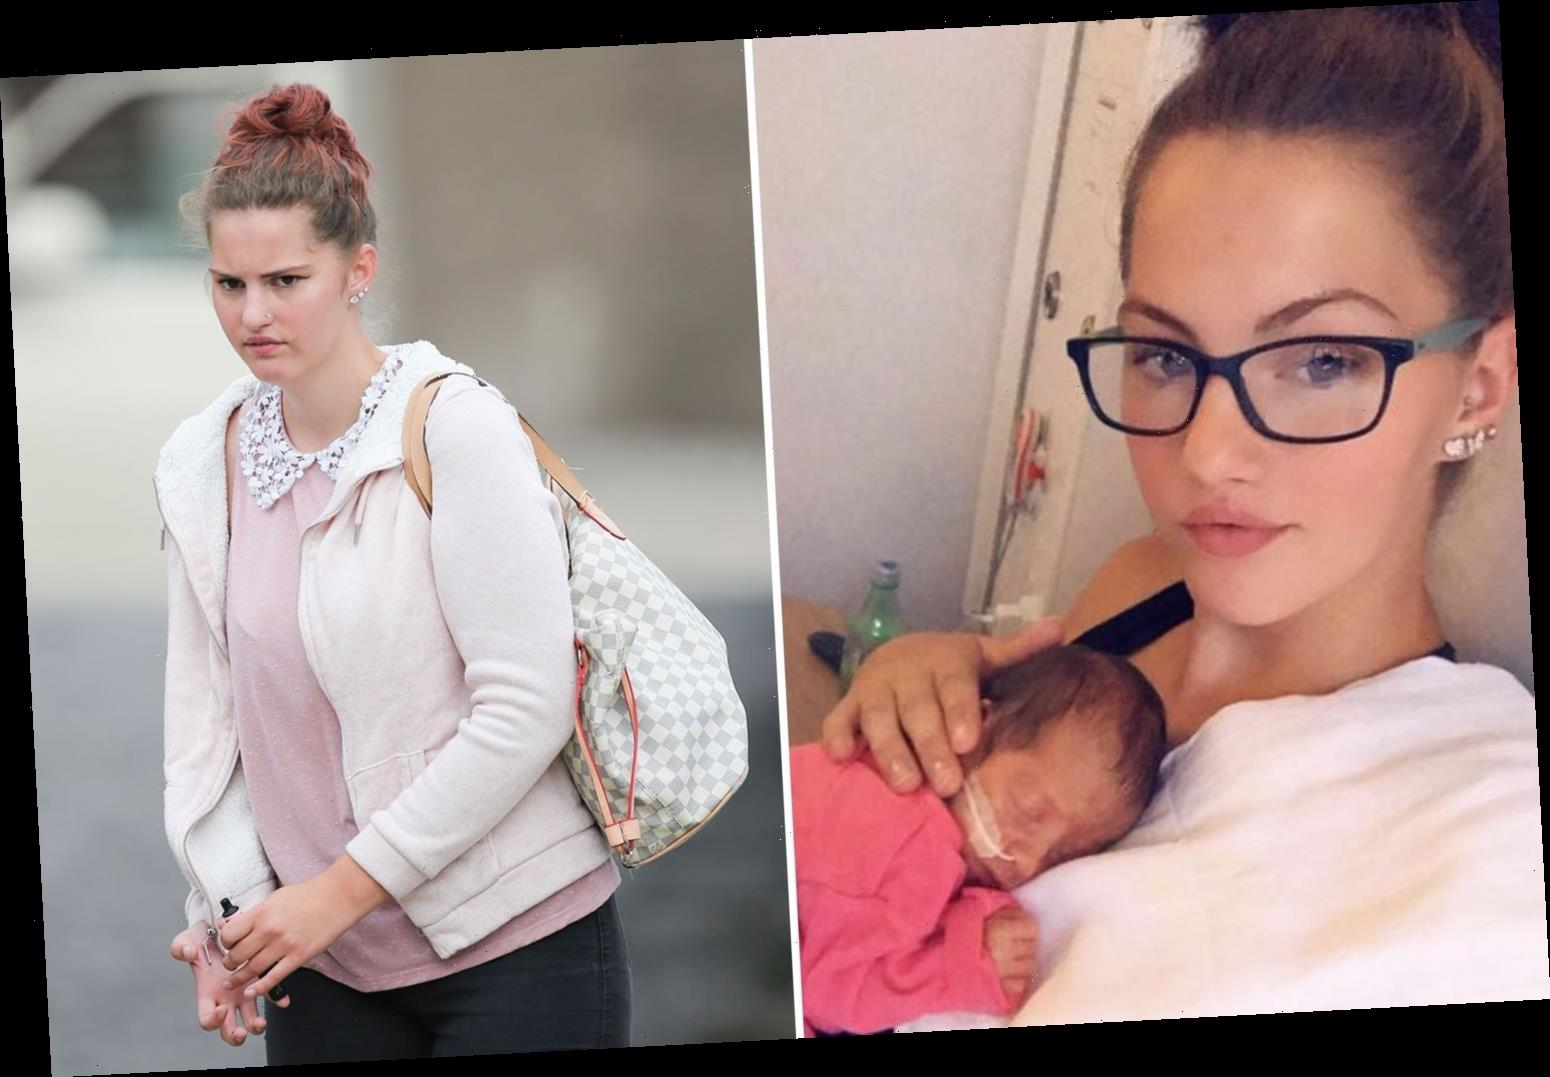 Mum, 21, 'threatened to throw her eight-week-old girl against a wall' before she died after broken ribs and brain bleed